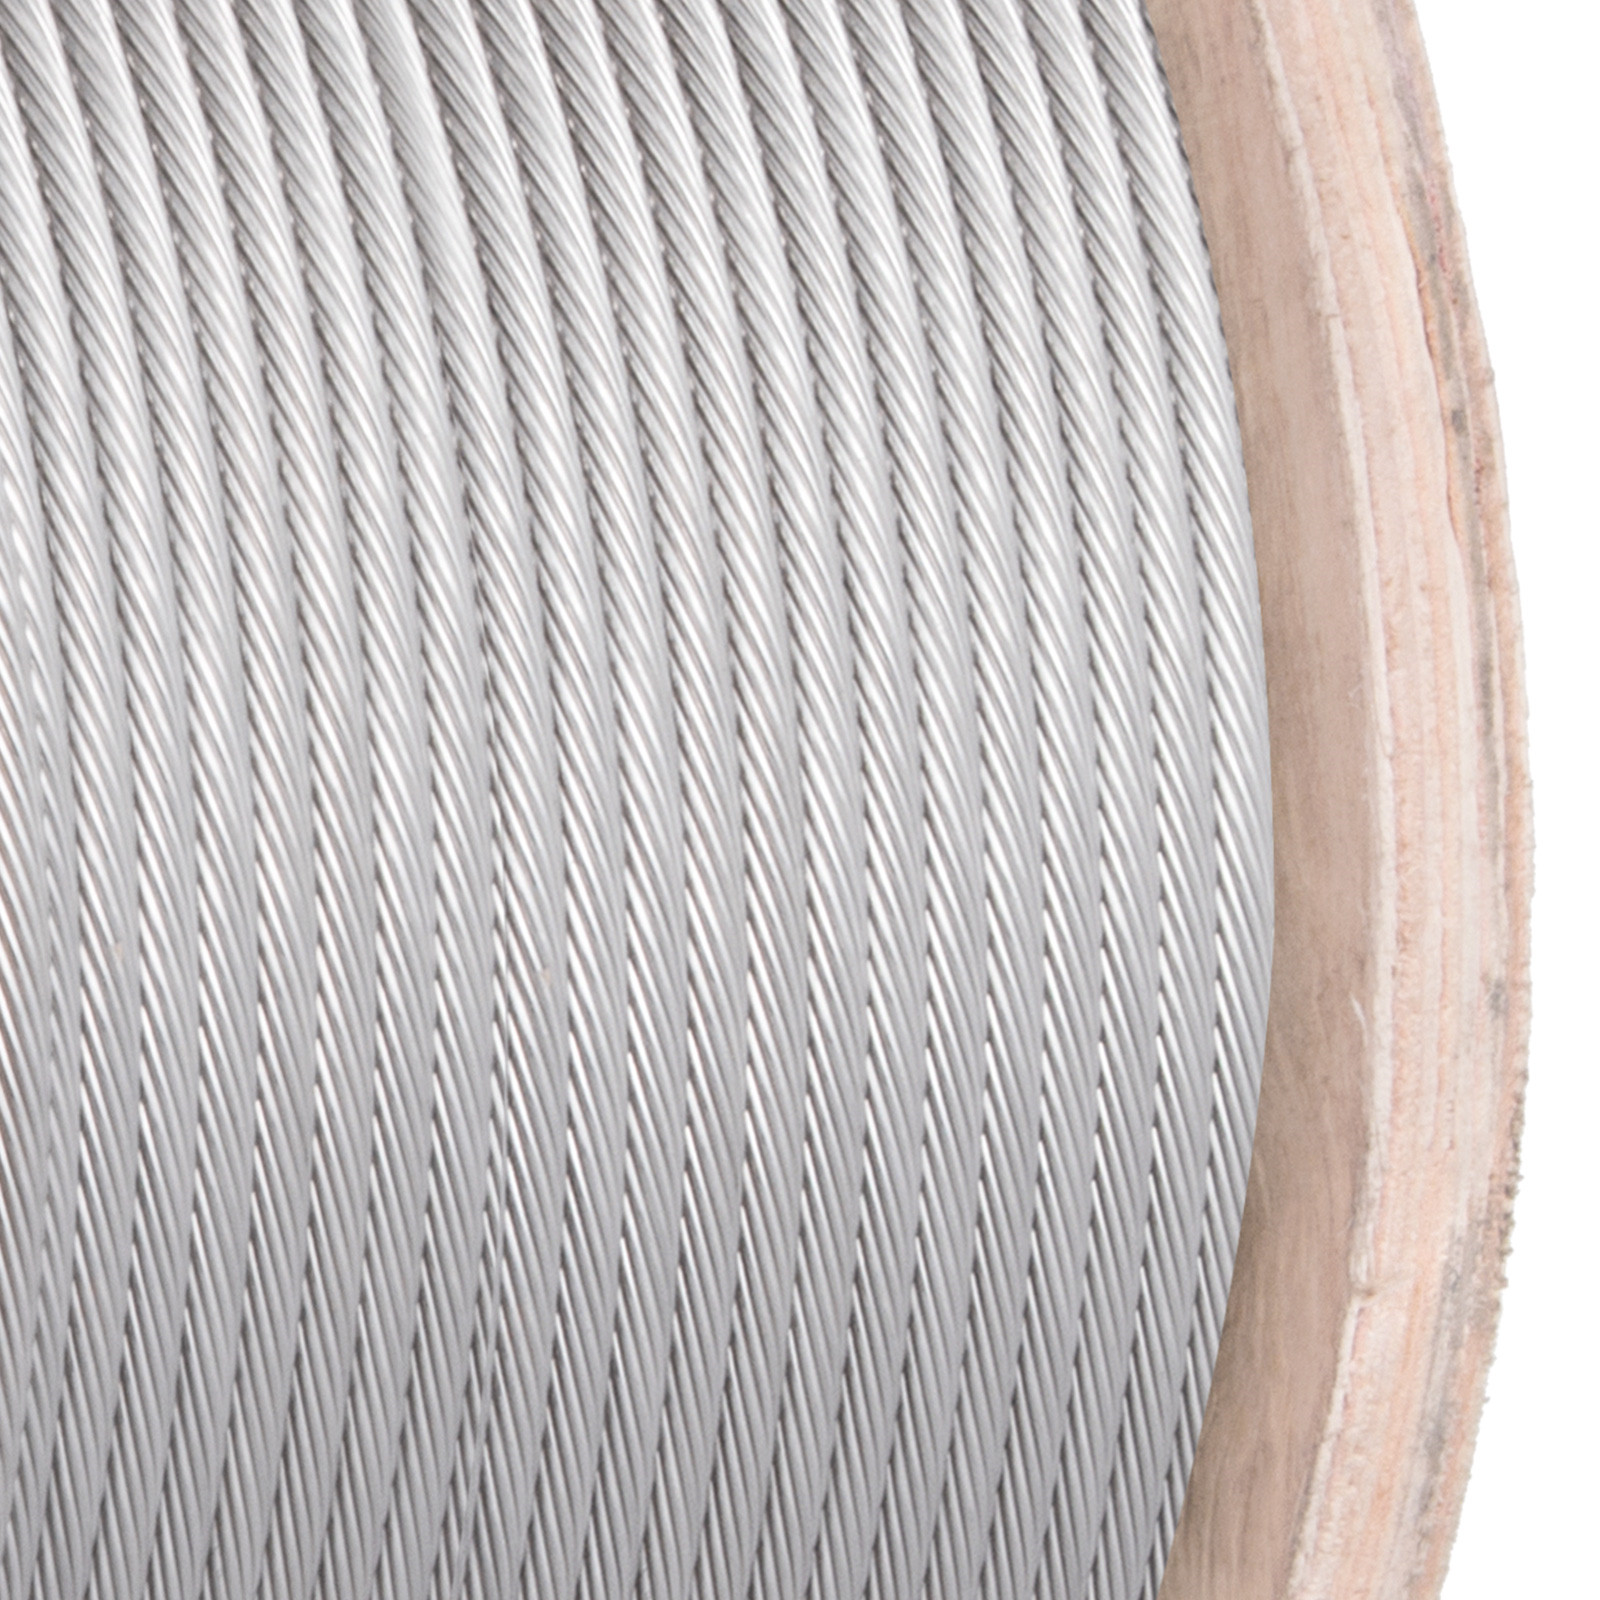 100,200,300,500,700,1000FT T316 Stainless Steel Cable Wire Rope,1x19